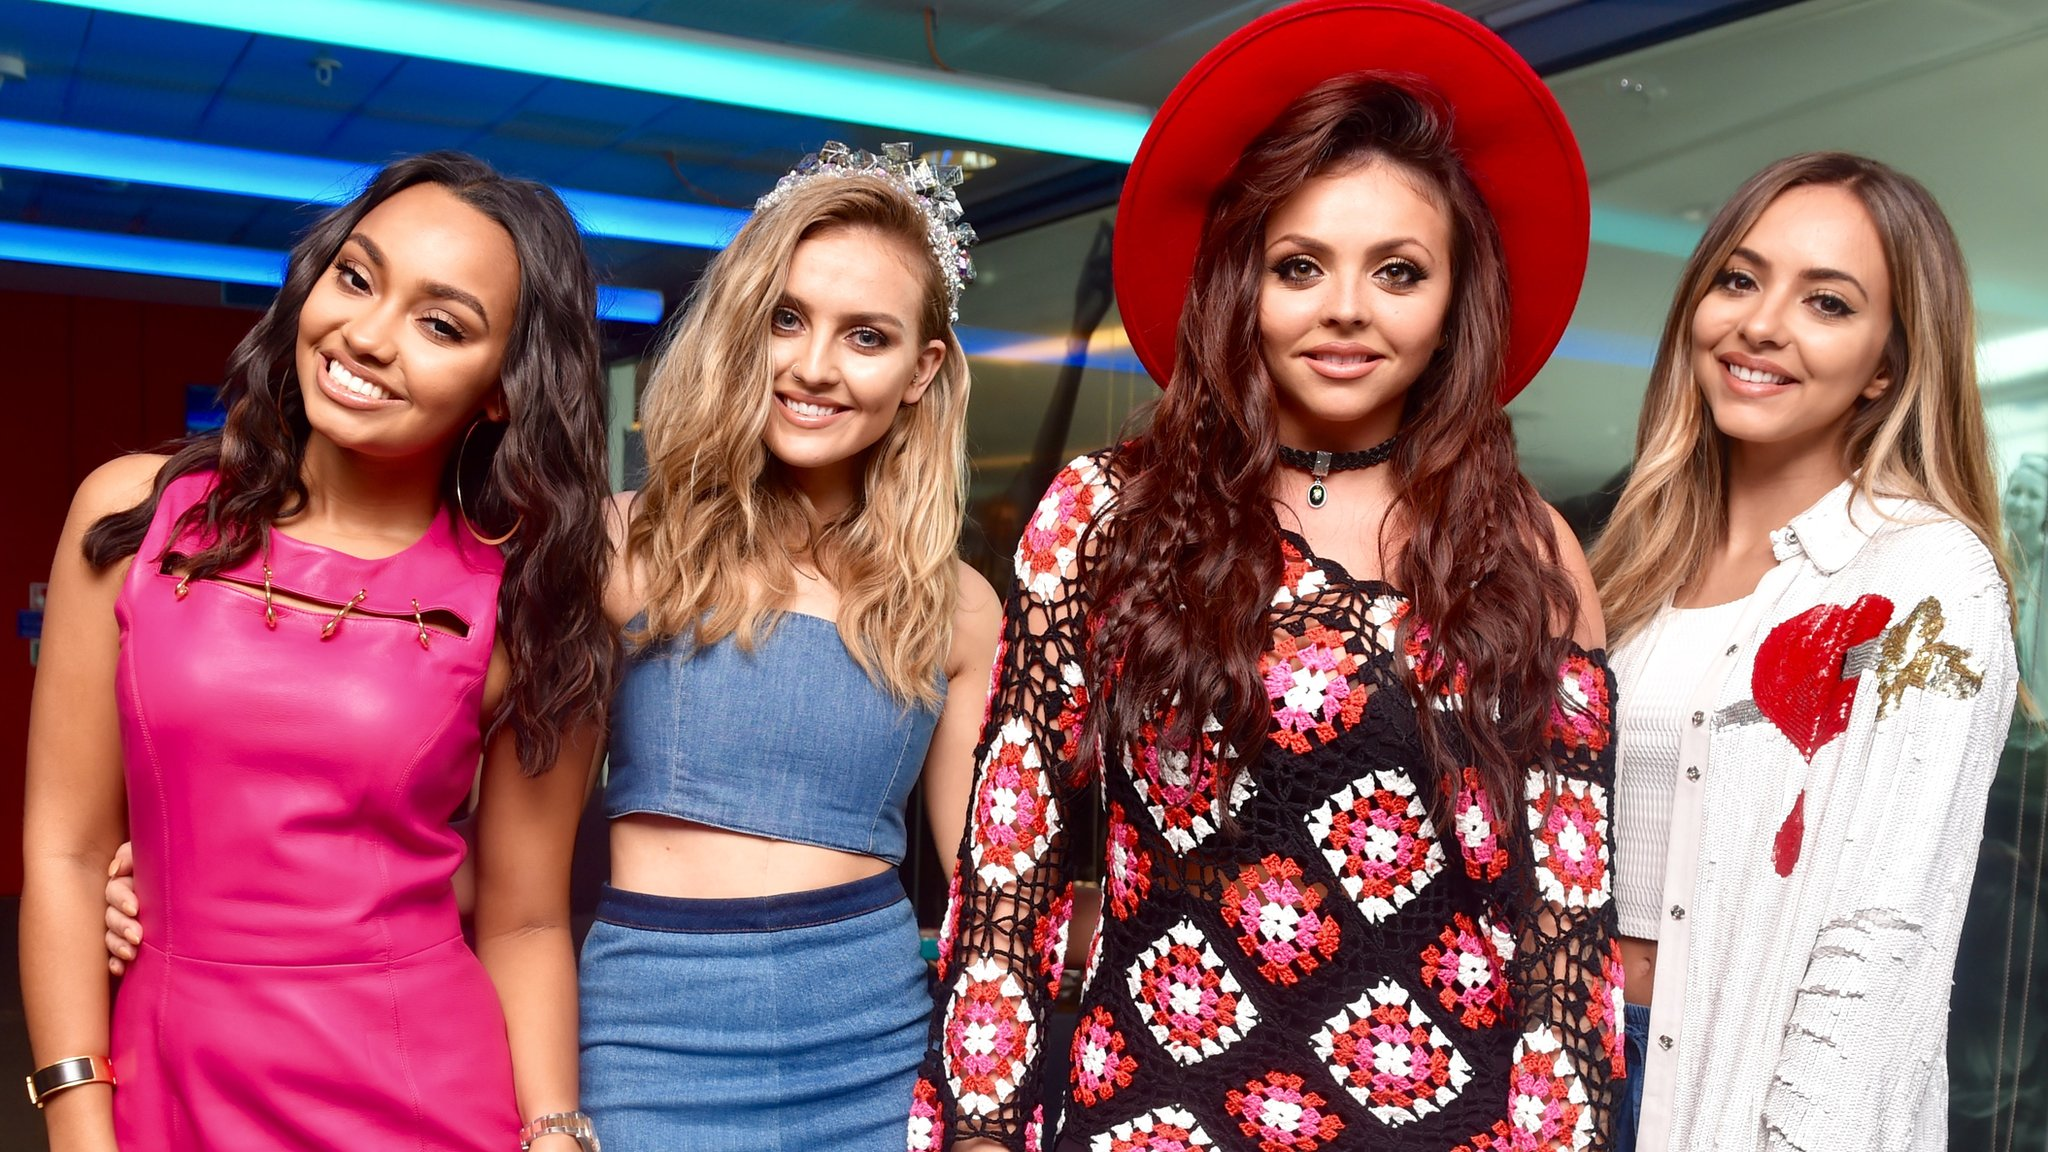 BBC News - Little Mix: 'We've grown a thick skin' over criticism